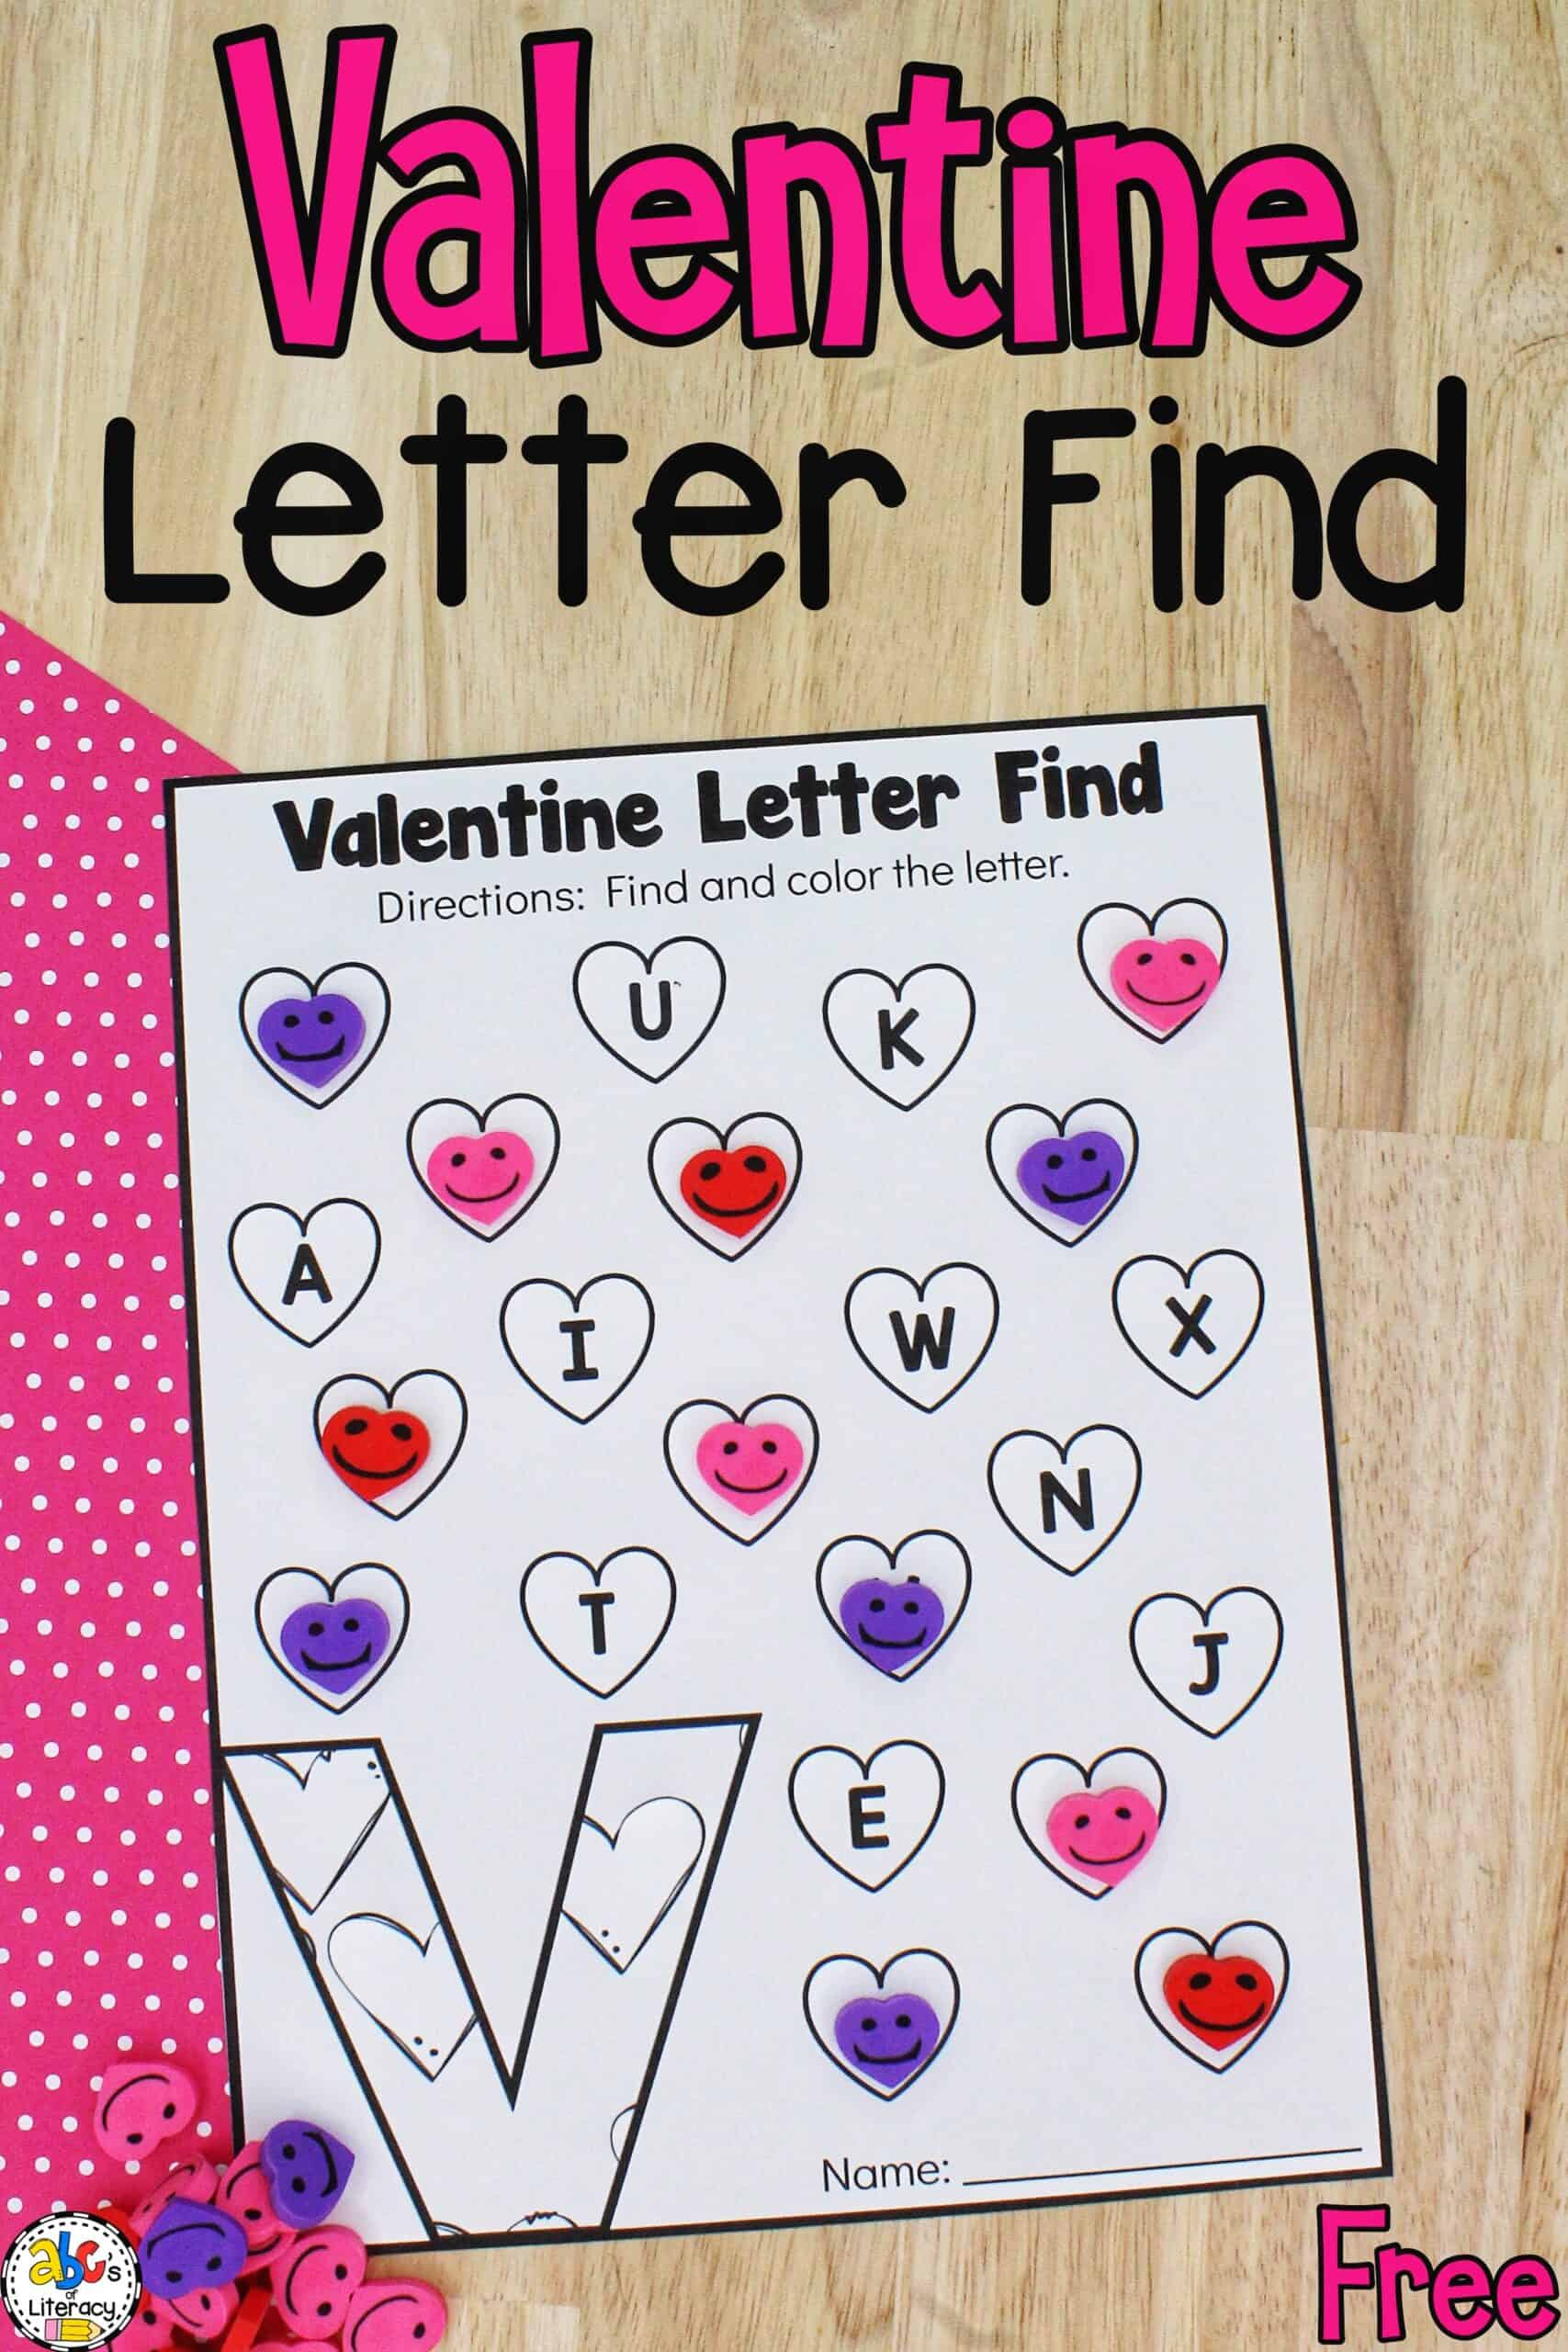 Valentine Letter Find Worksheets